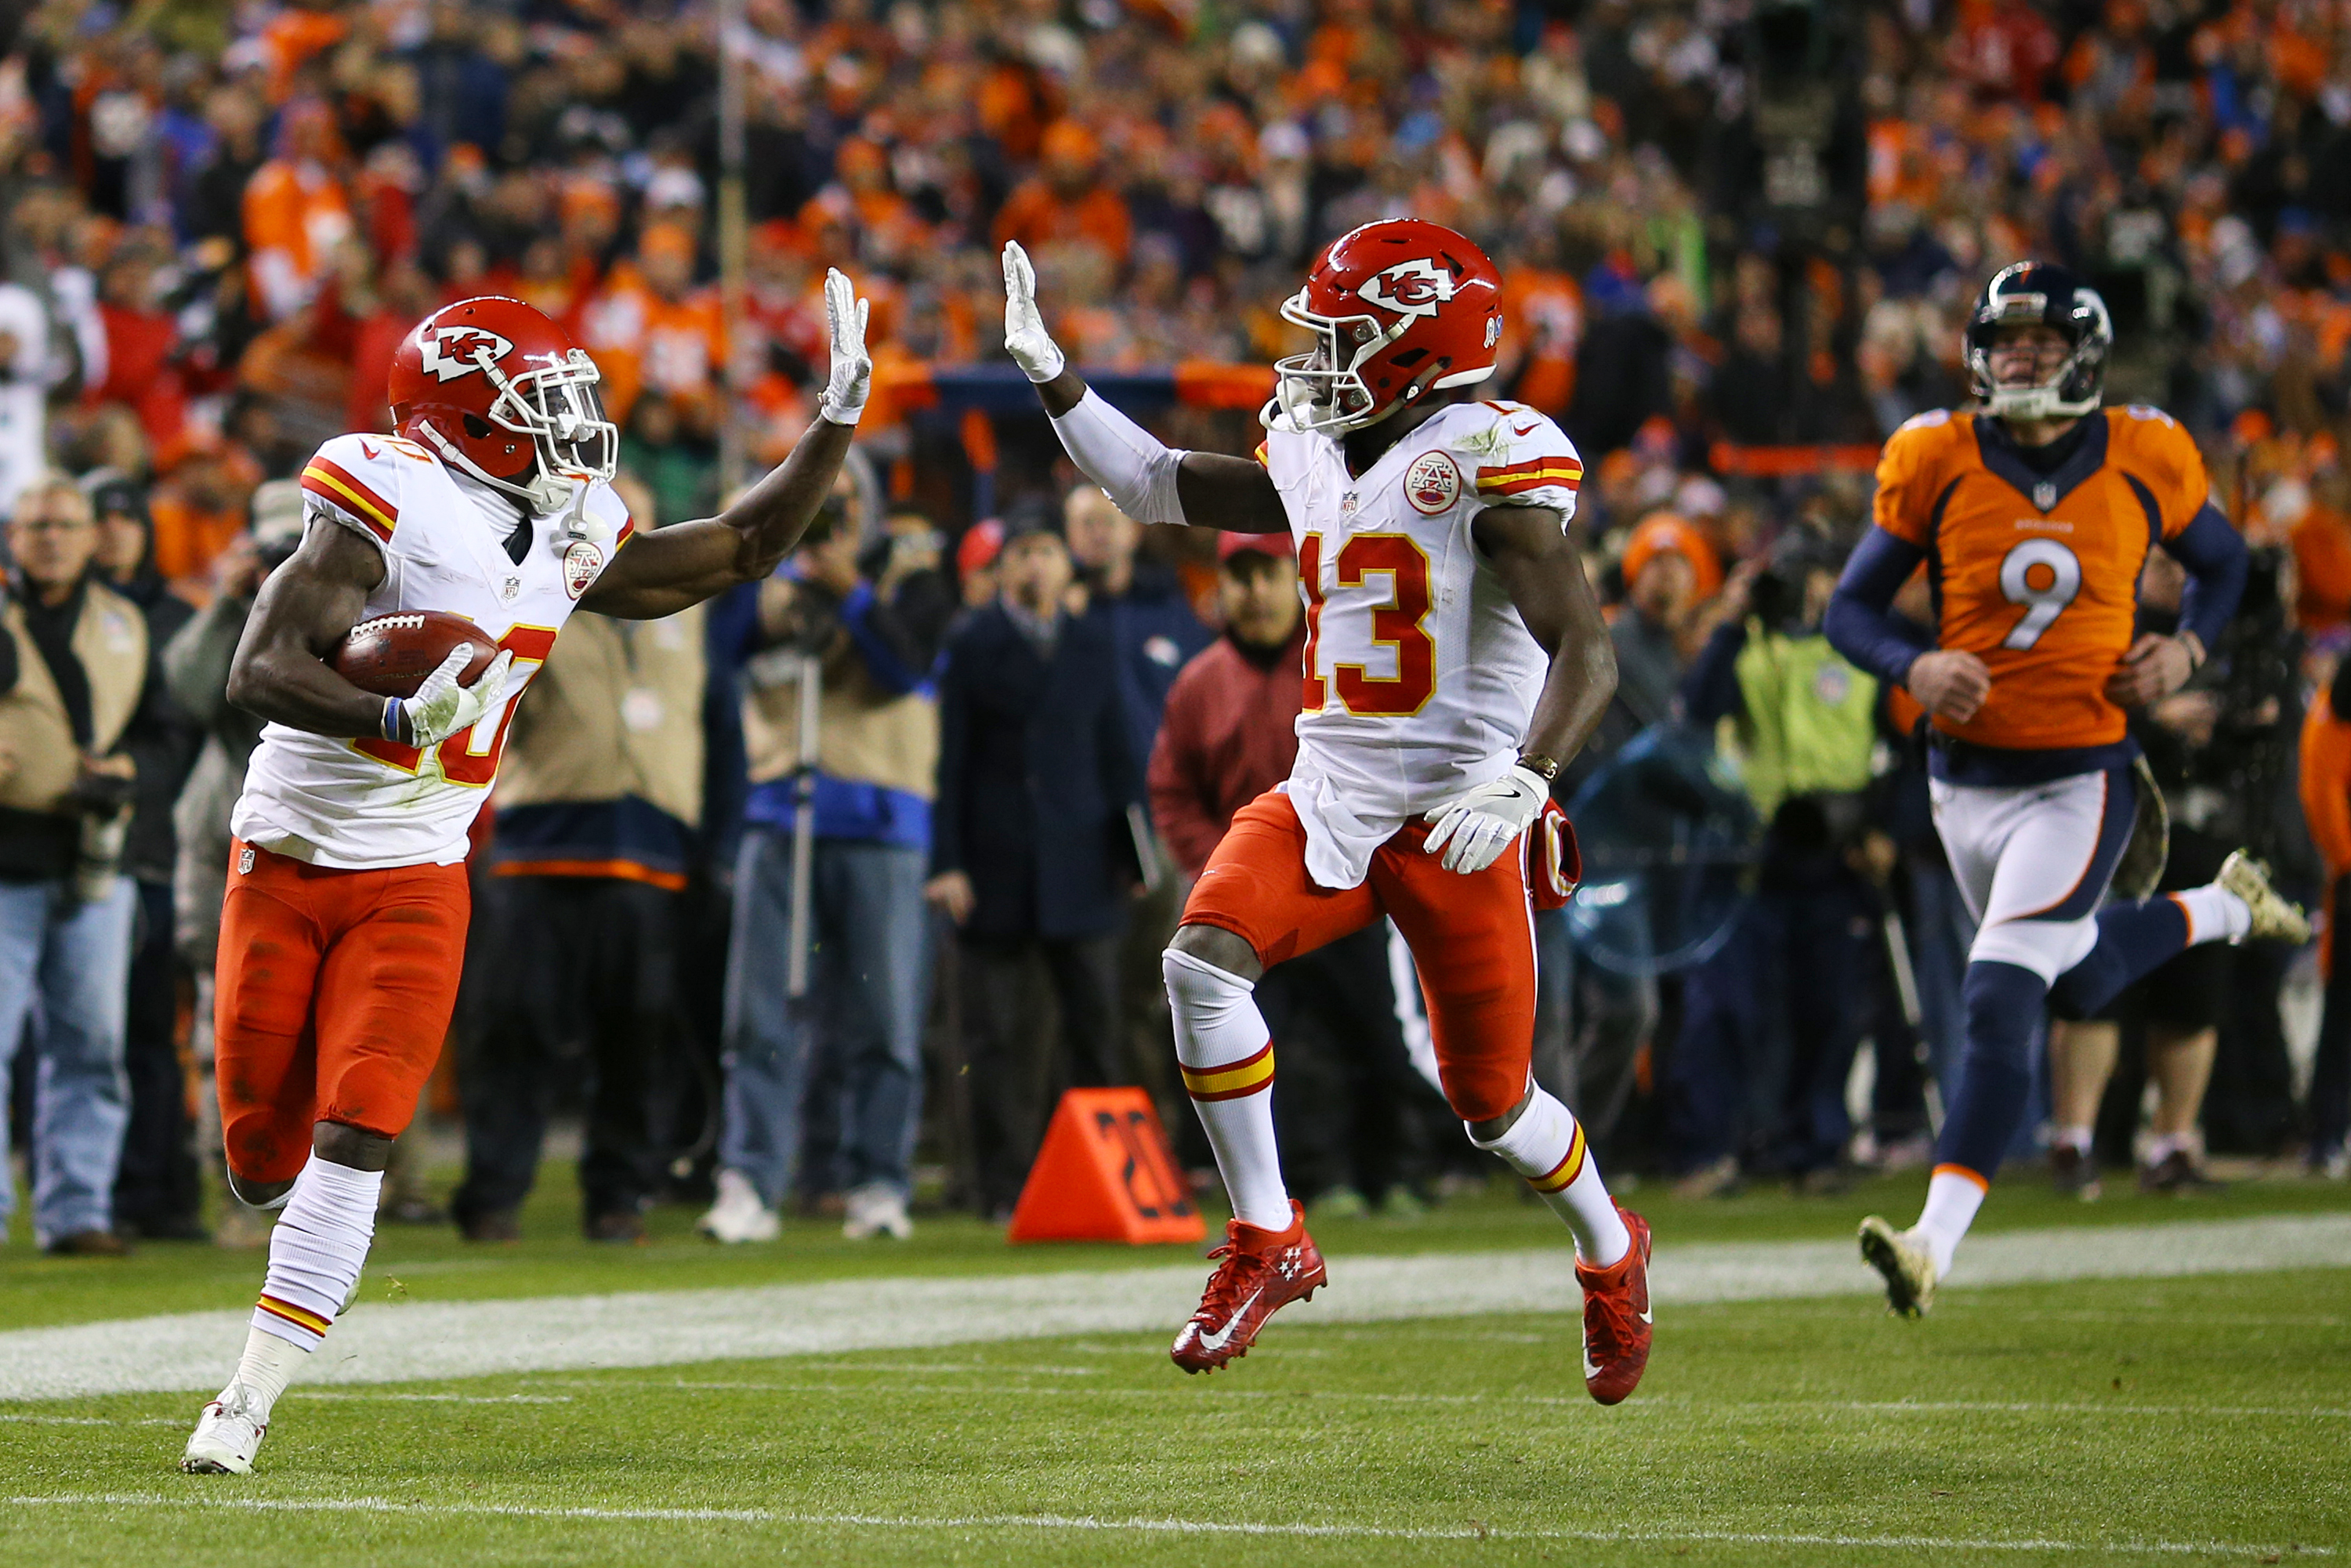 Chiefs vs Patriotrs Tyreek Hill flashed the peace sign en route